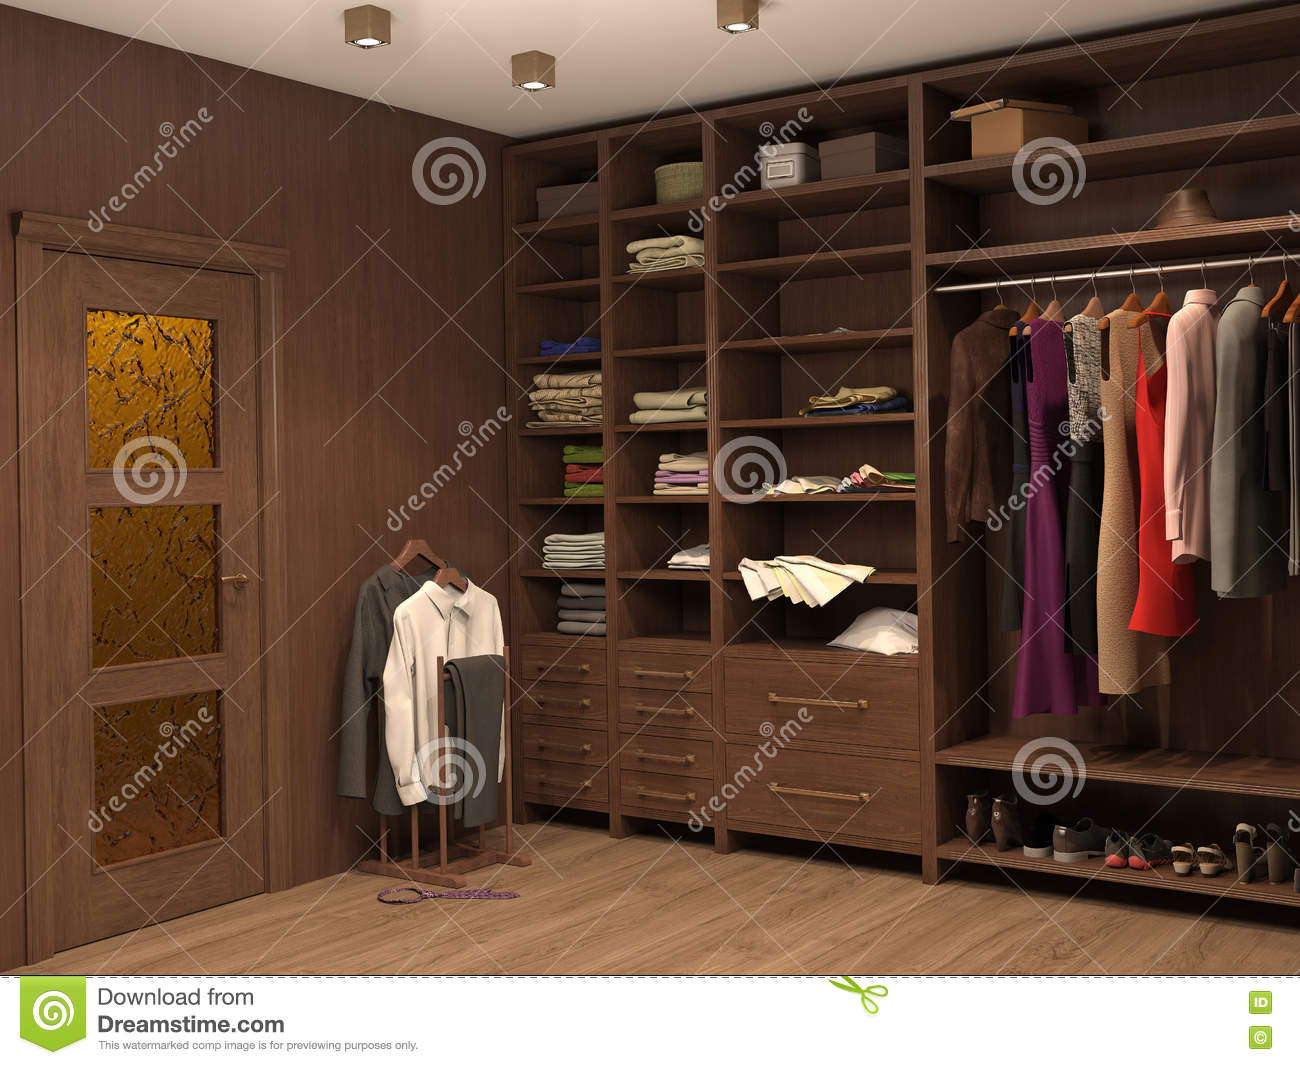 Dressing room interior of a modern house stock for Dressing room interior